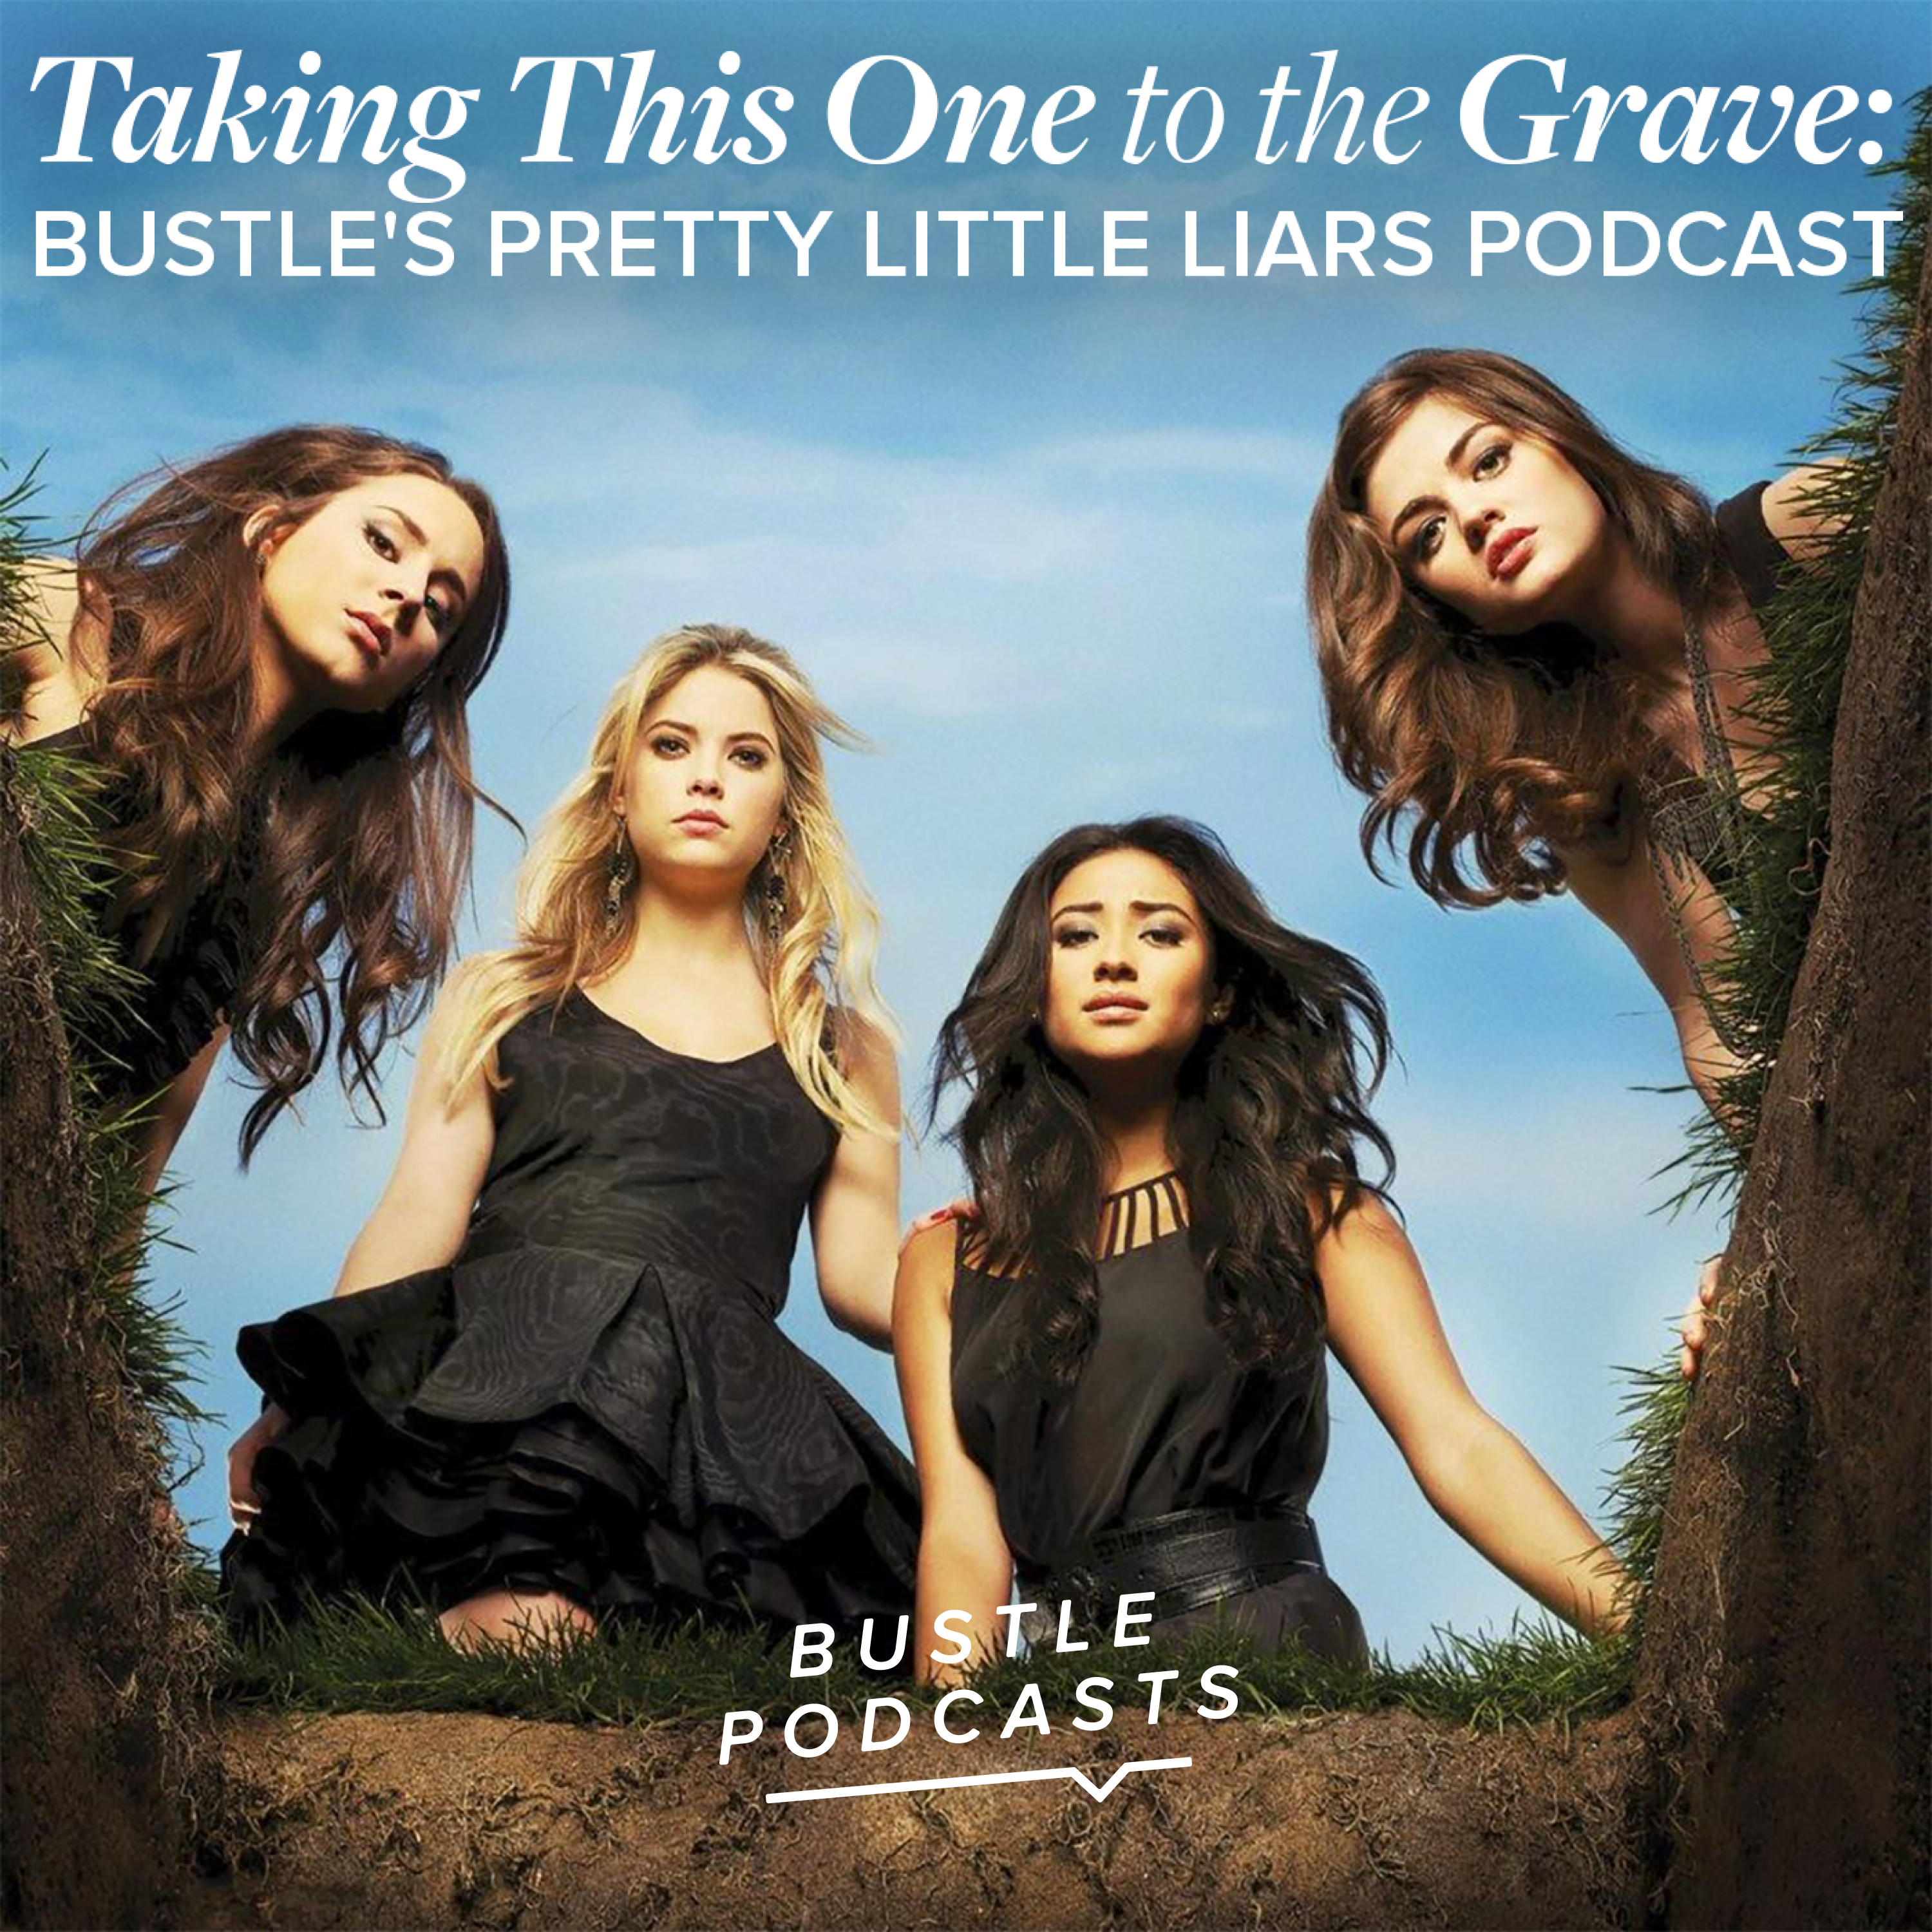 Taking This One To The Grave: Bustle's Pretty Little Liars Podcast